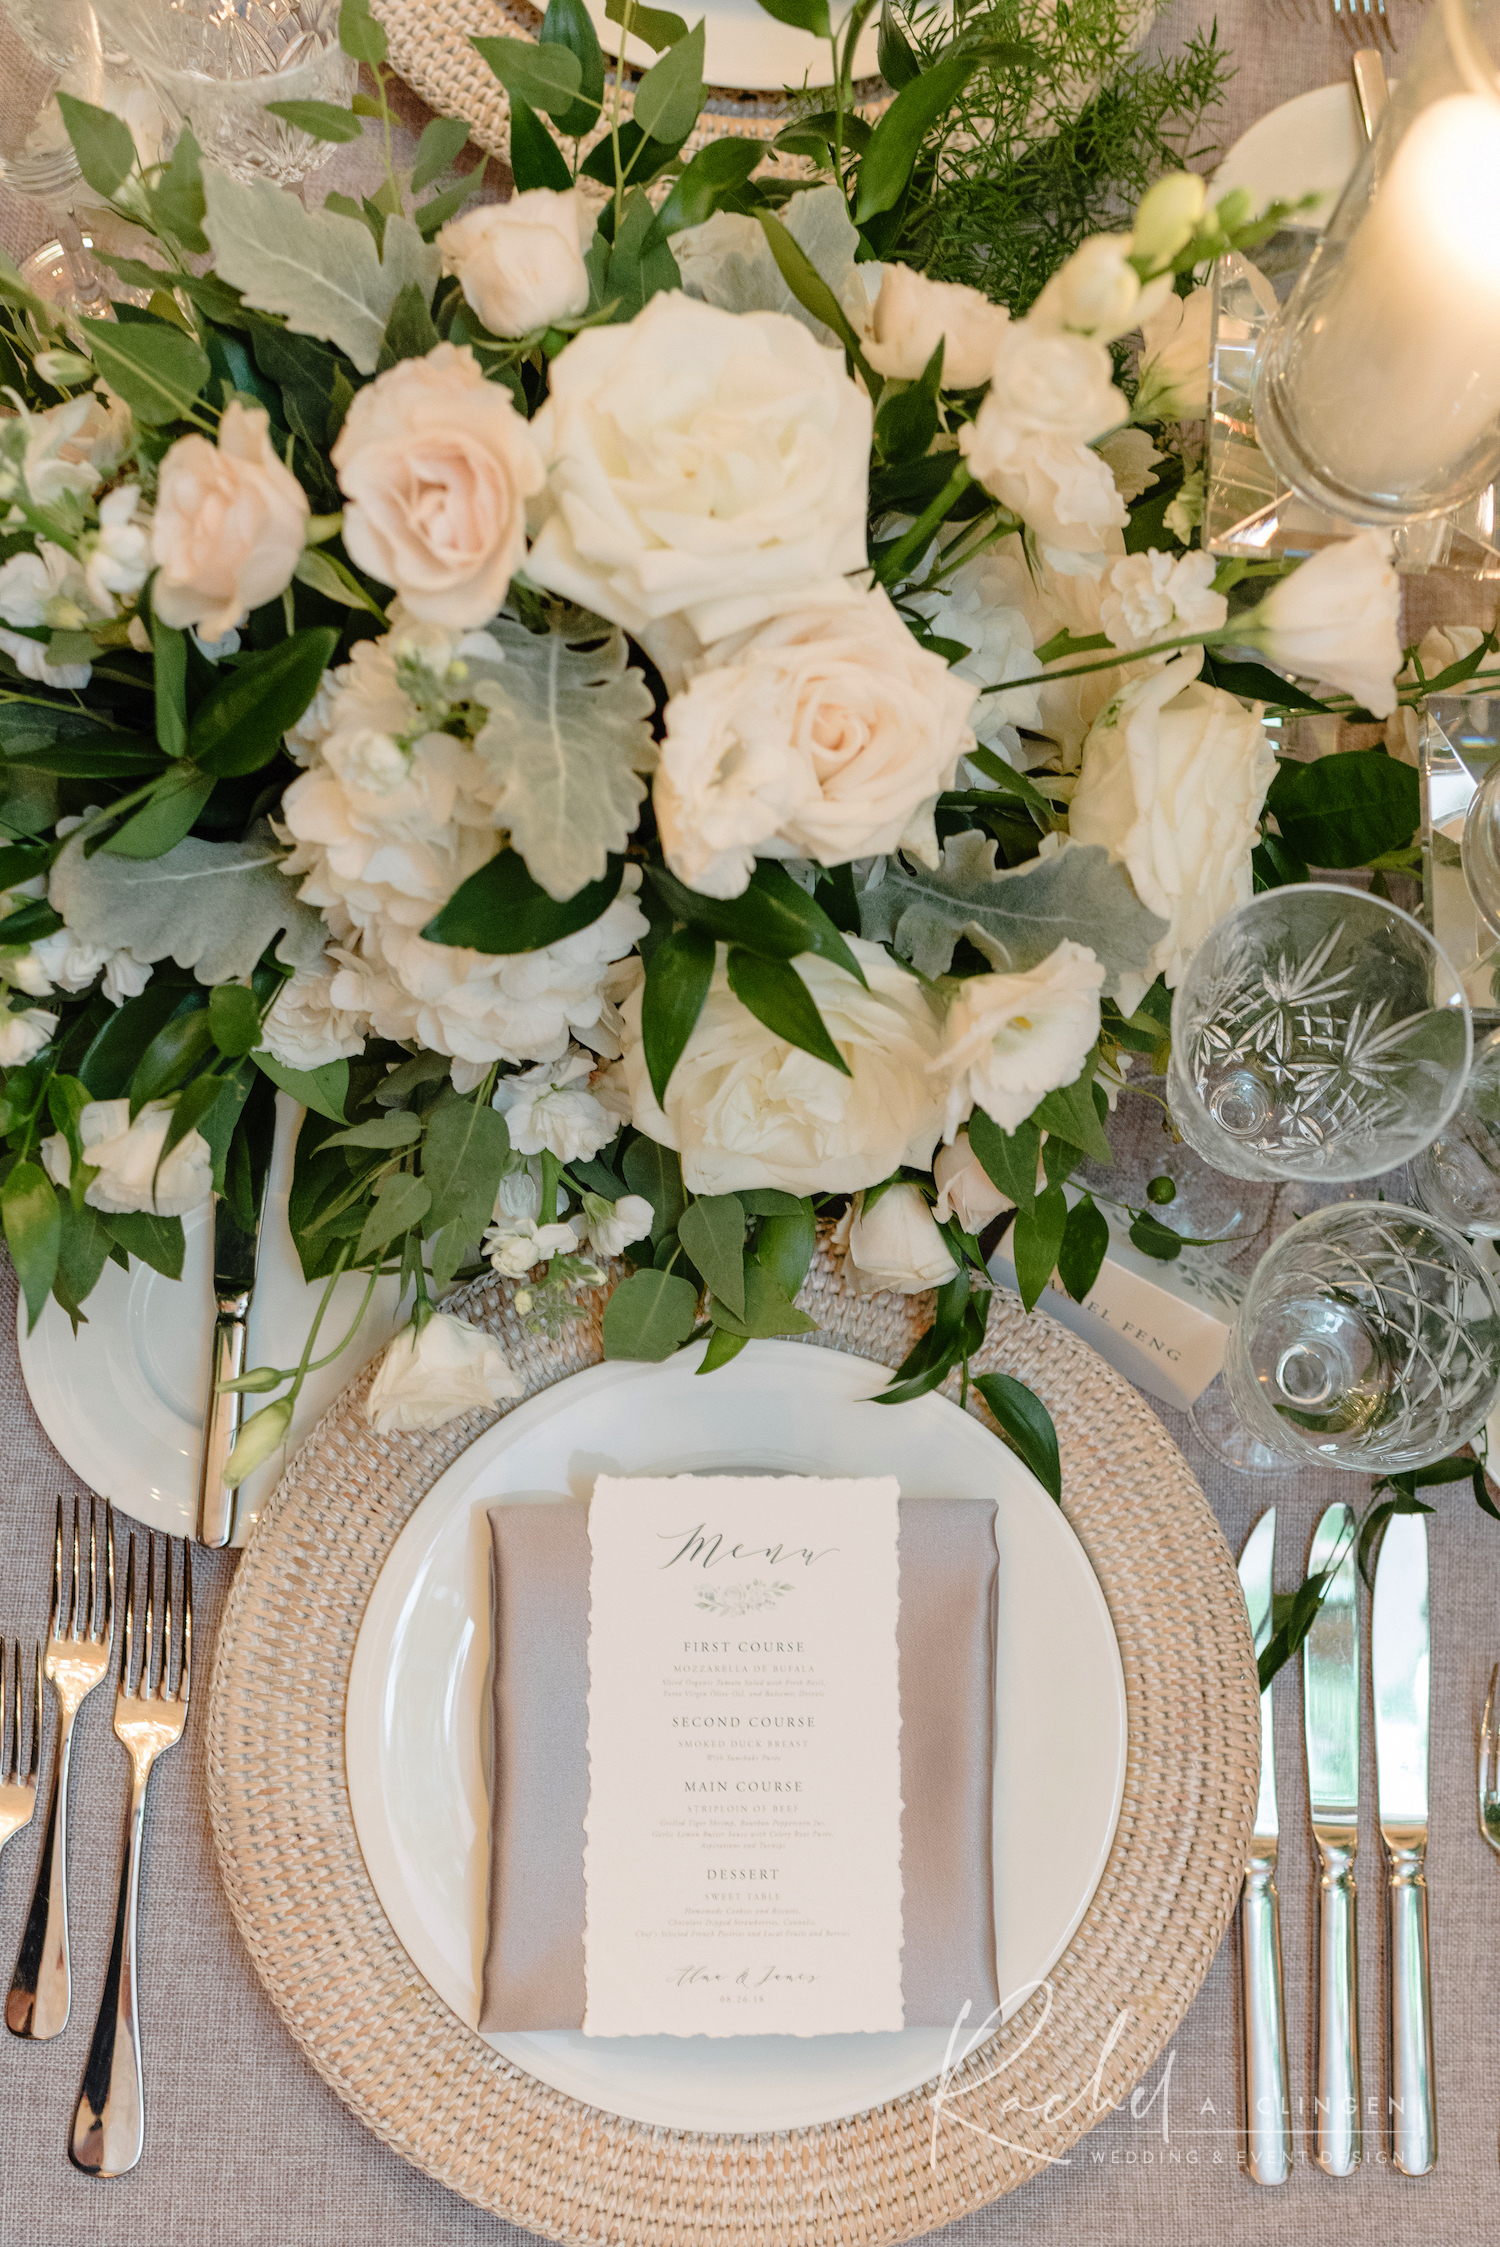 luxury wedding decor placesetting